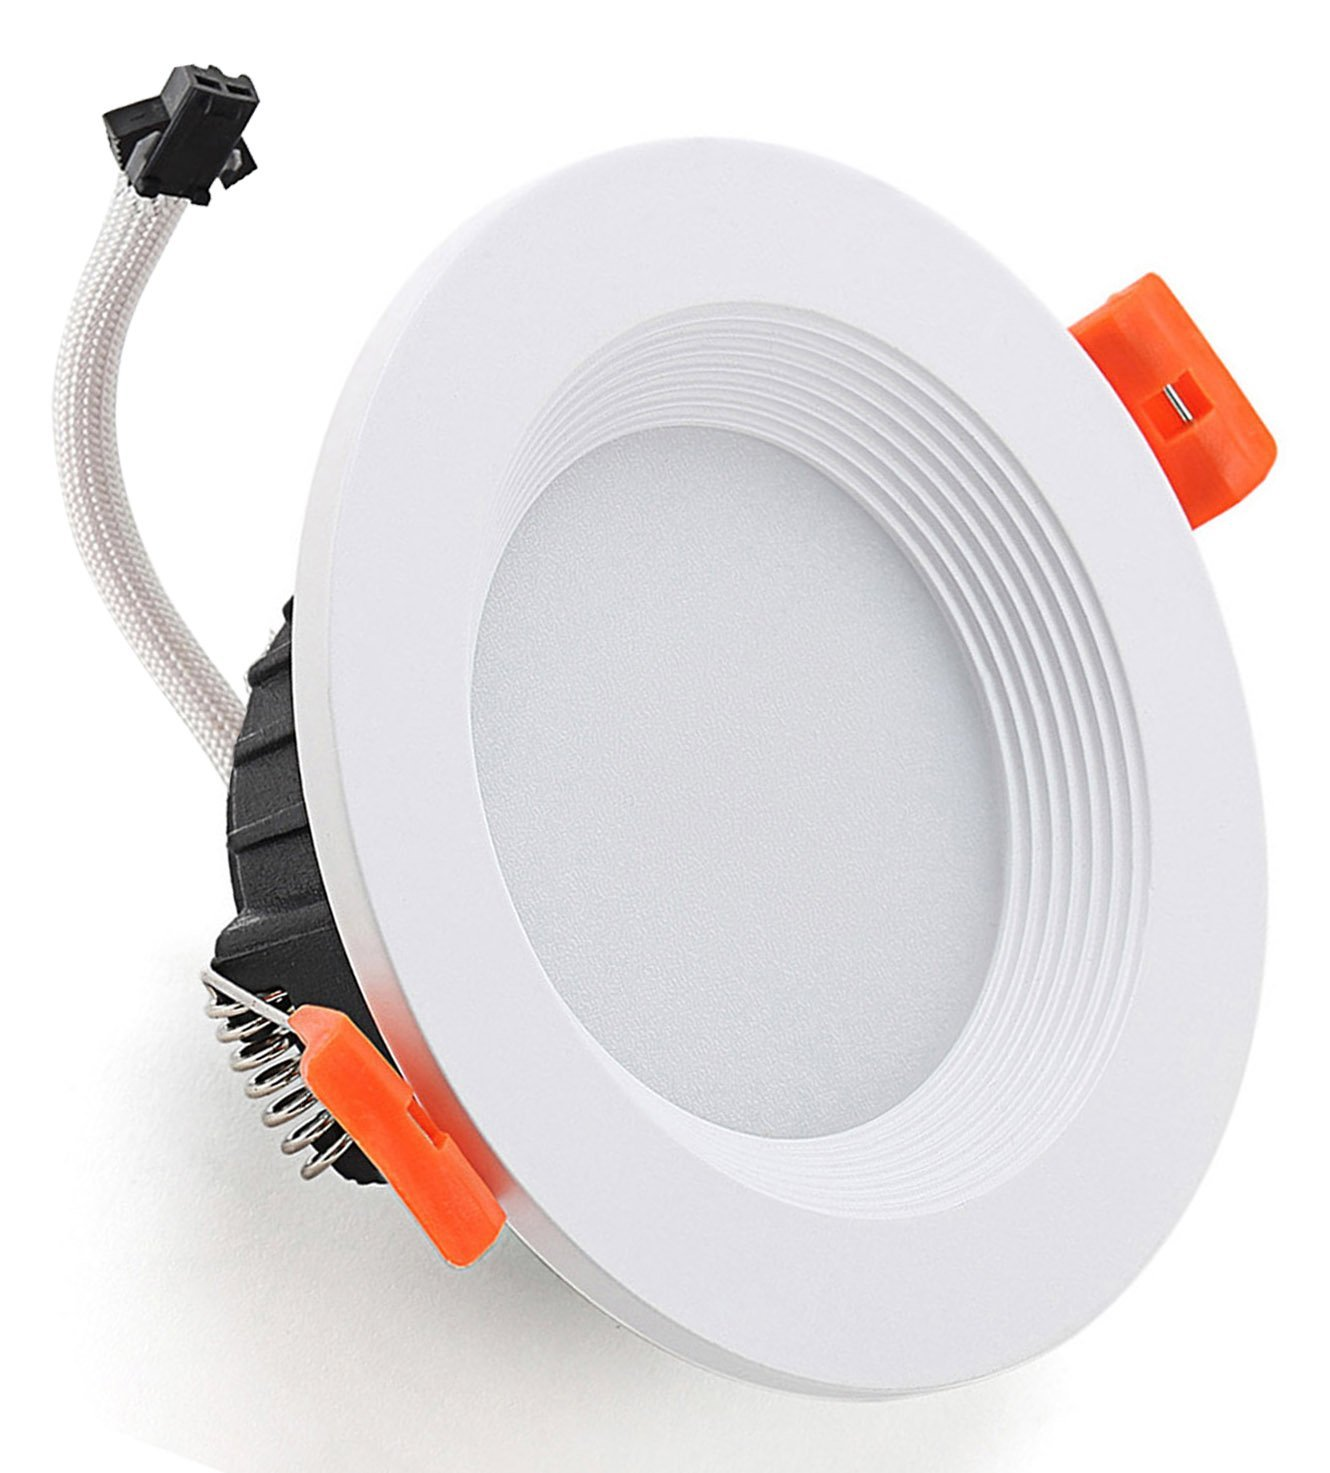 Diranda Round LED Recessed Ceiling Light Retrofit Cool White 6000-6500K 7W 4.41'' with Led Driver Lighting Lamp Fixture AC85-265V